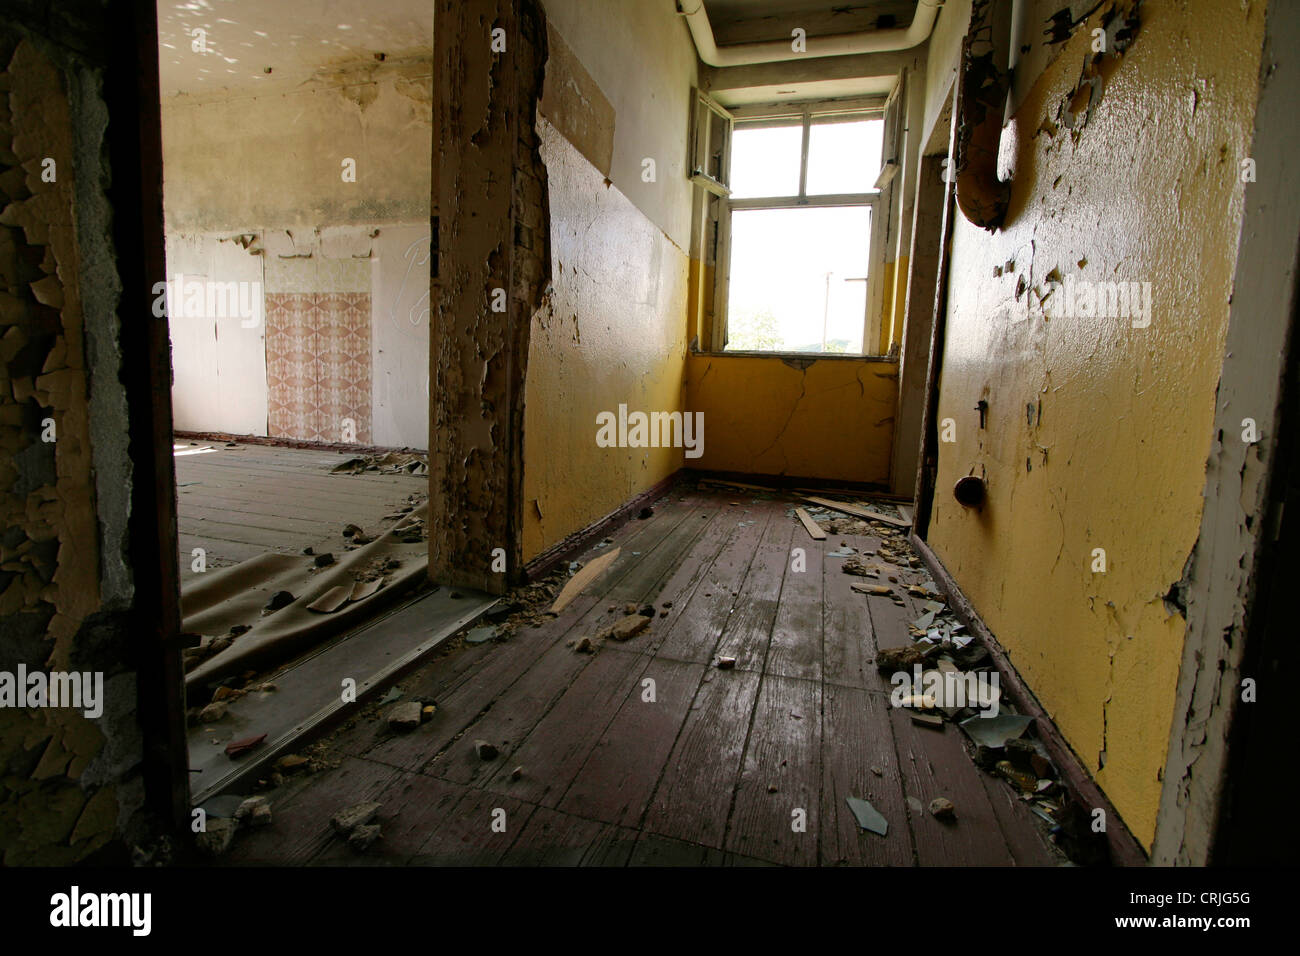 Camere Oscure Bologna : Camere oscure immagini & camere oscure fotos stock alamy